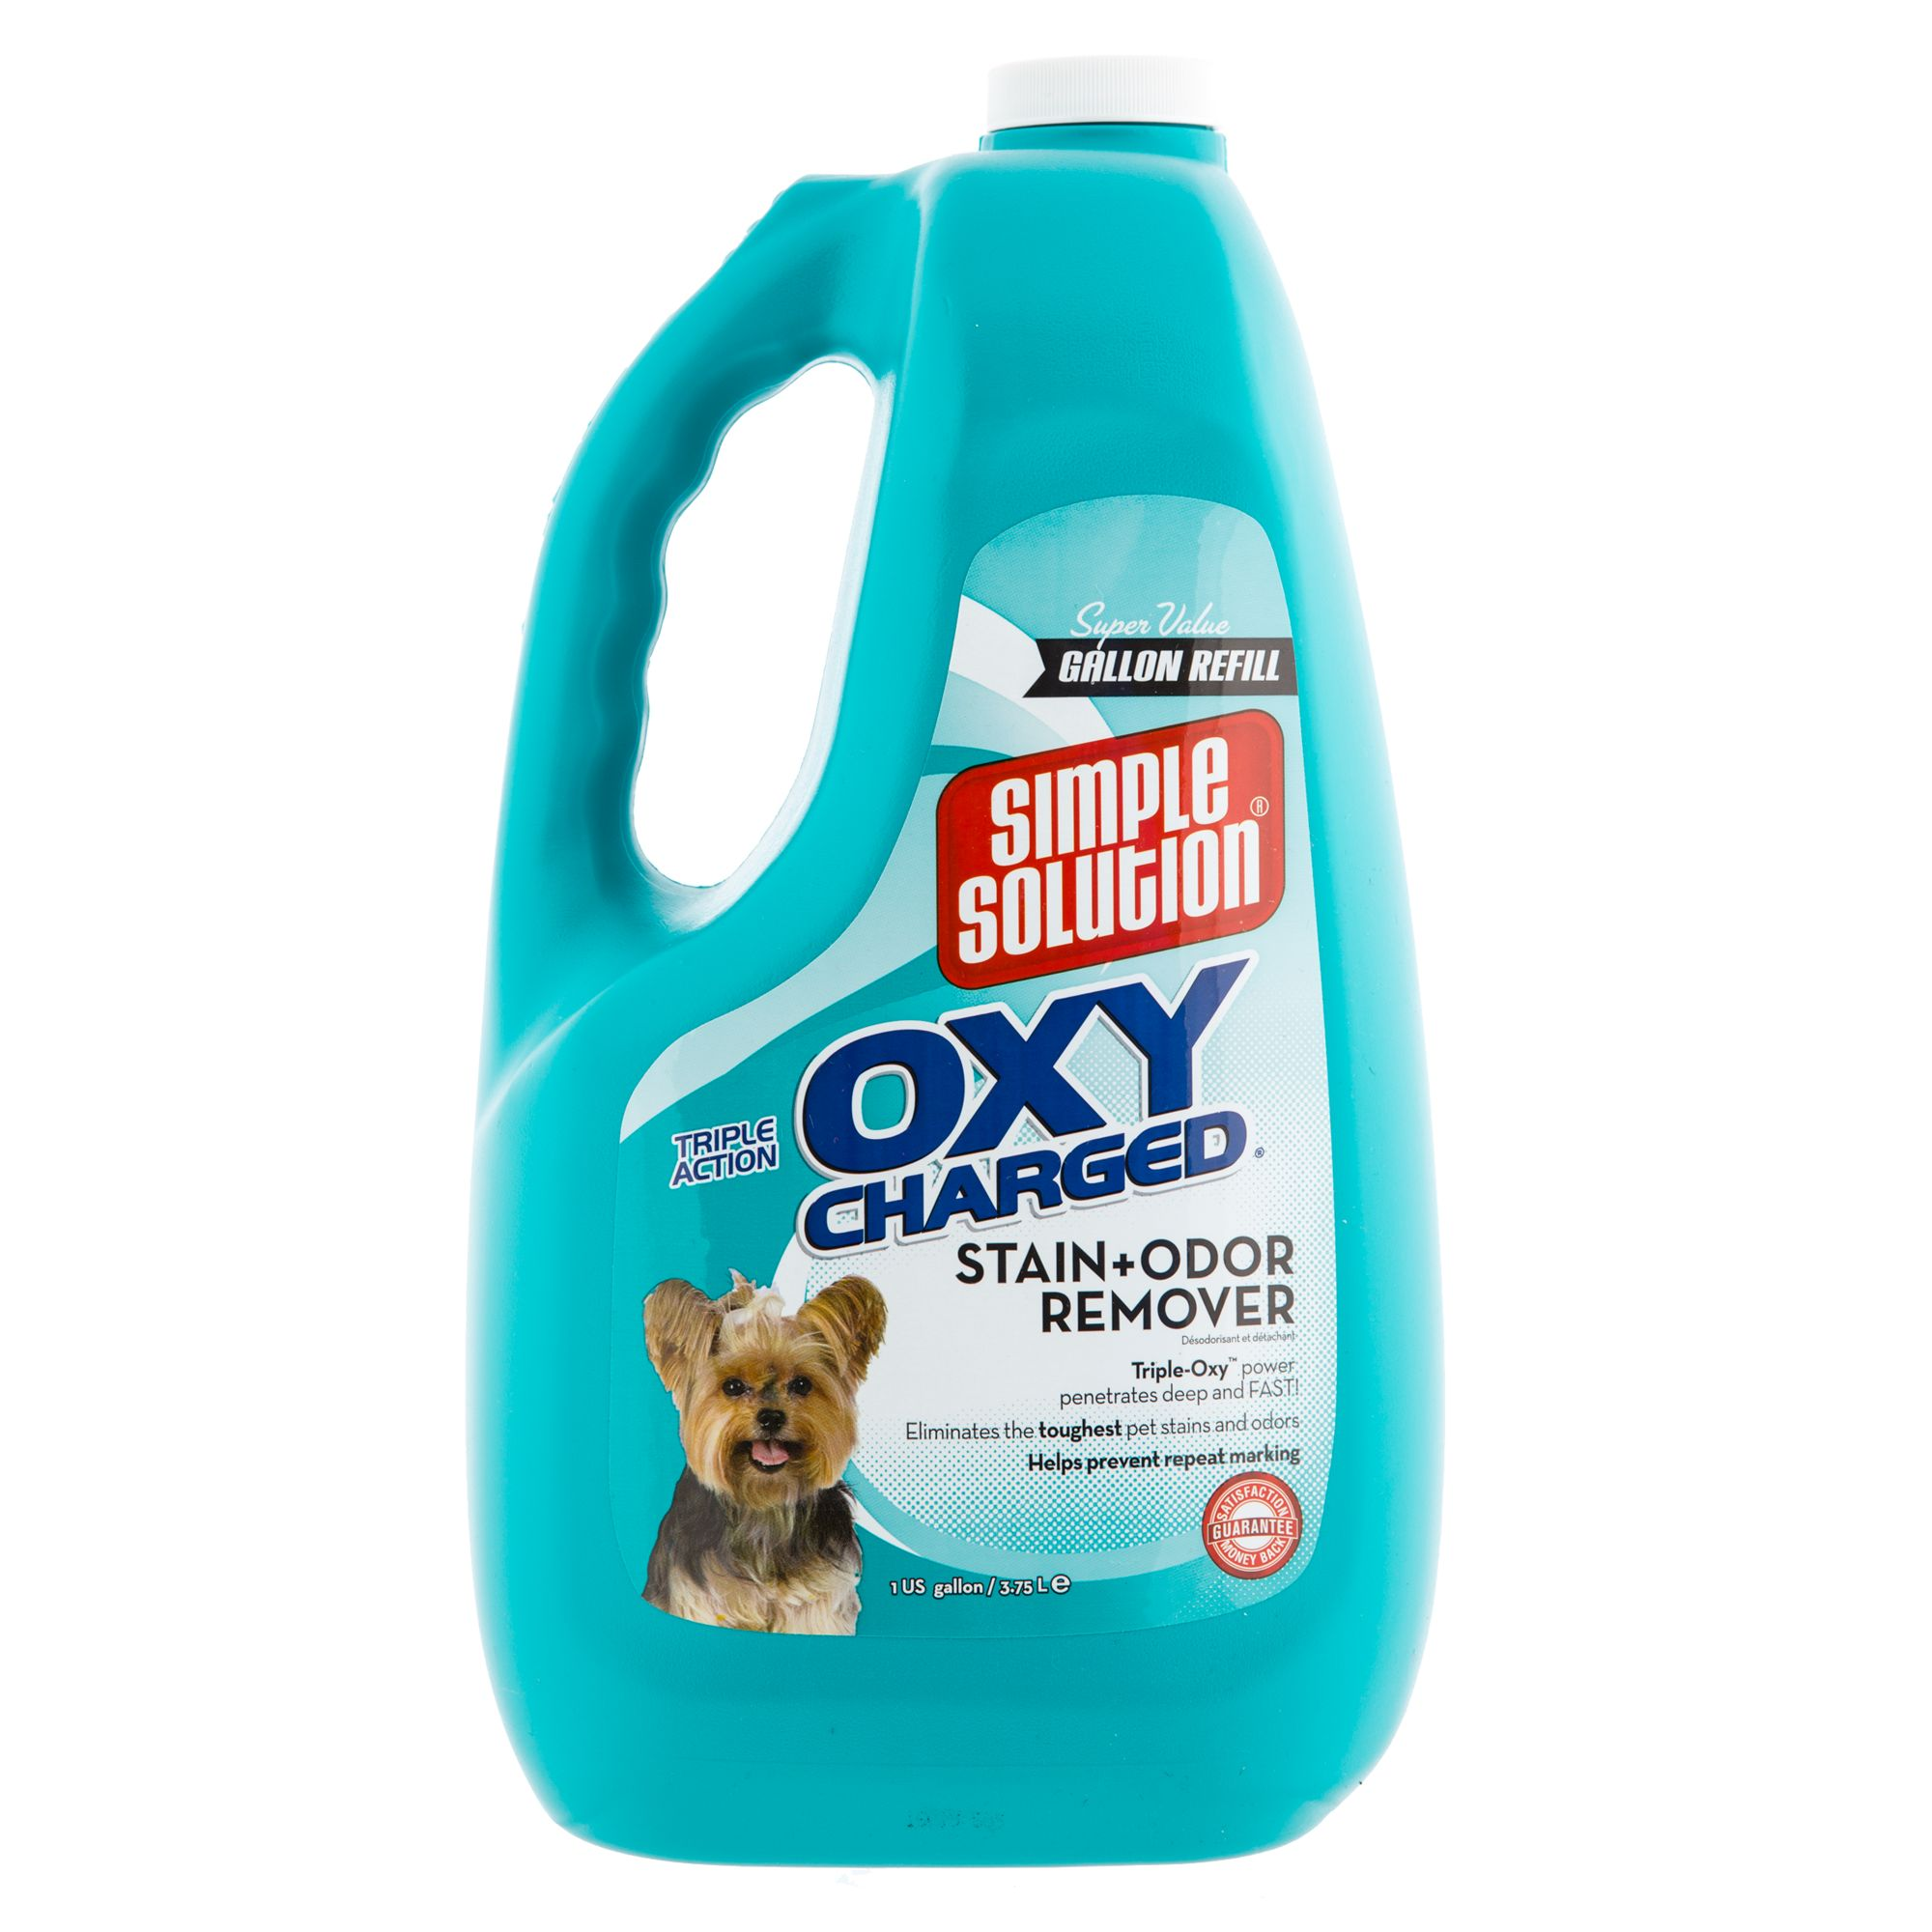 Simple Solution Oxy Charge Stain & Odor Remover